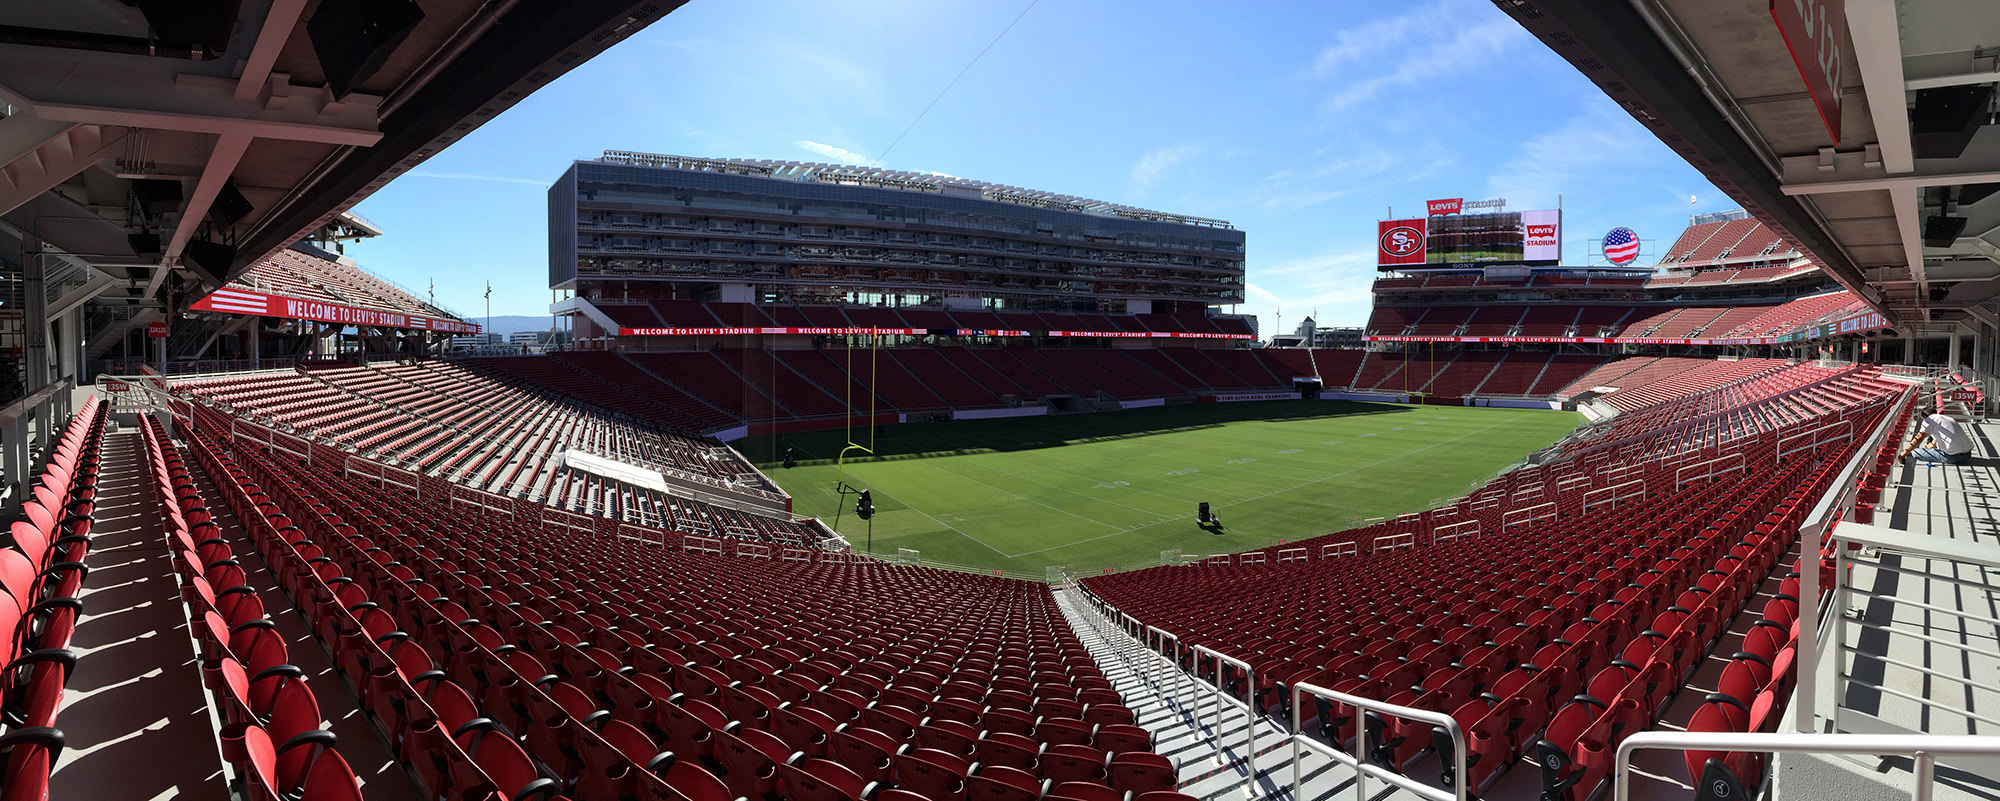 Panoramic view of Levis Stadium image